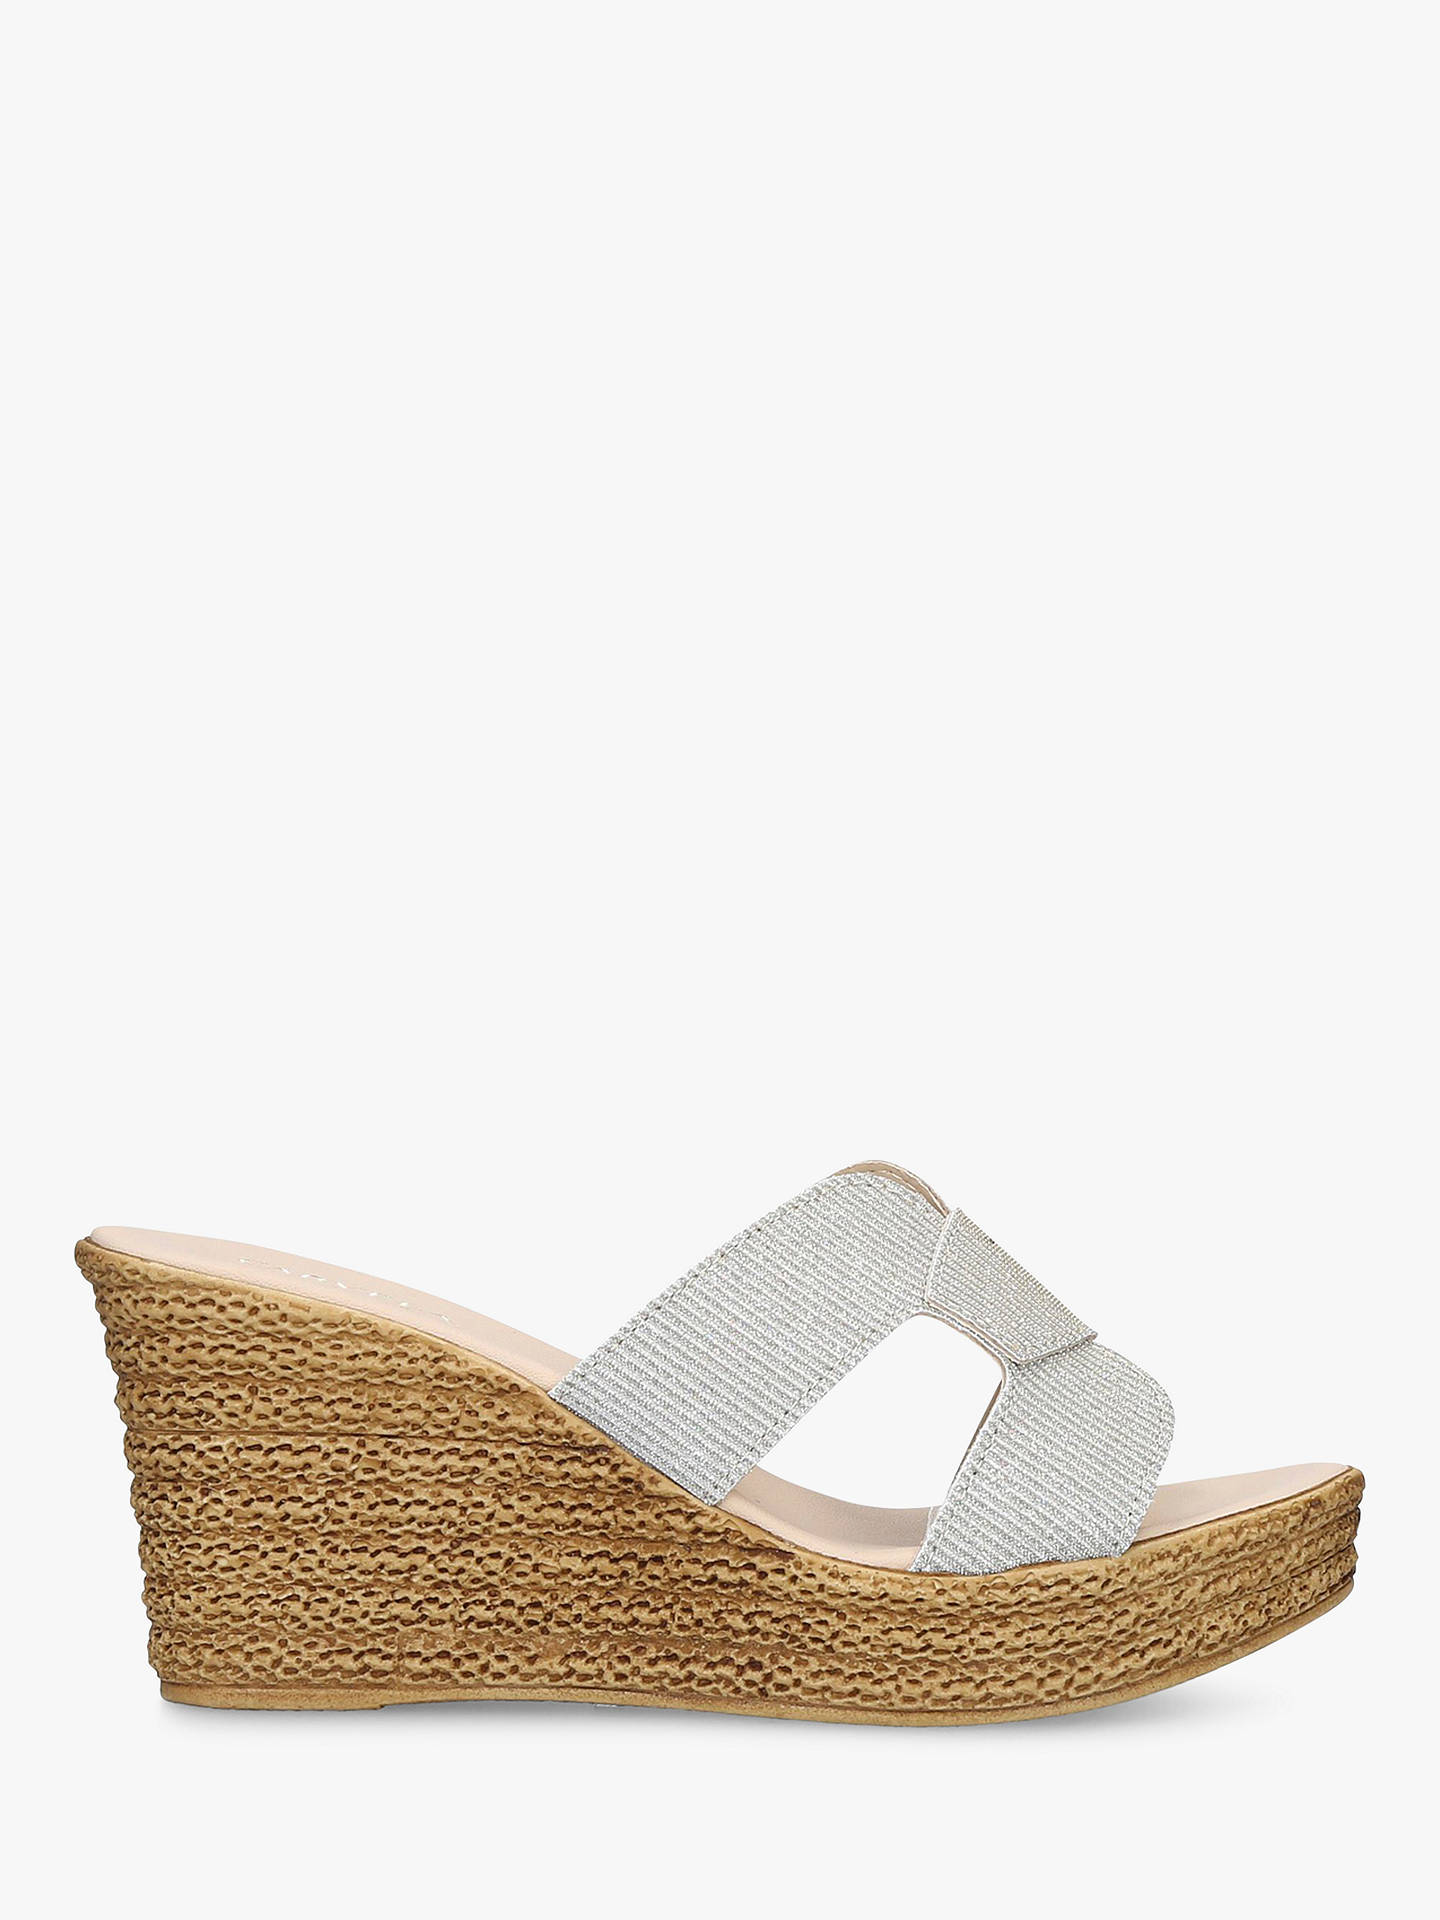 a5ed276404e5 Buy Carvela Comfort Stacie Wedge Heel Sandals